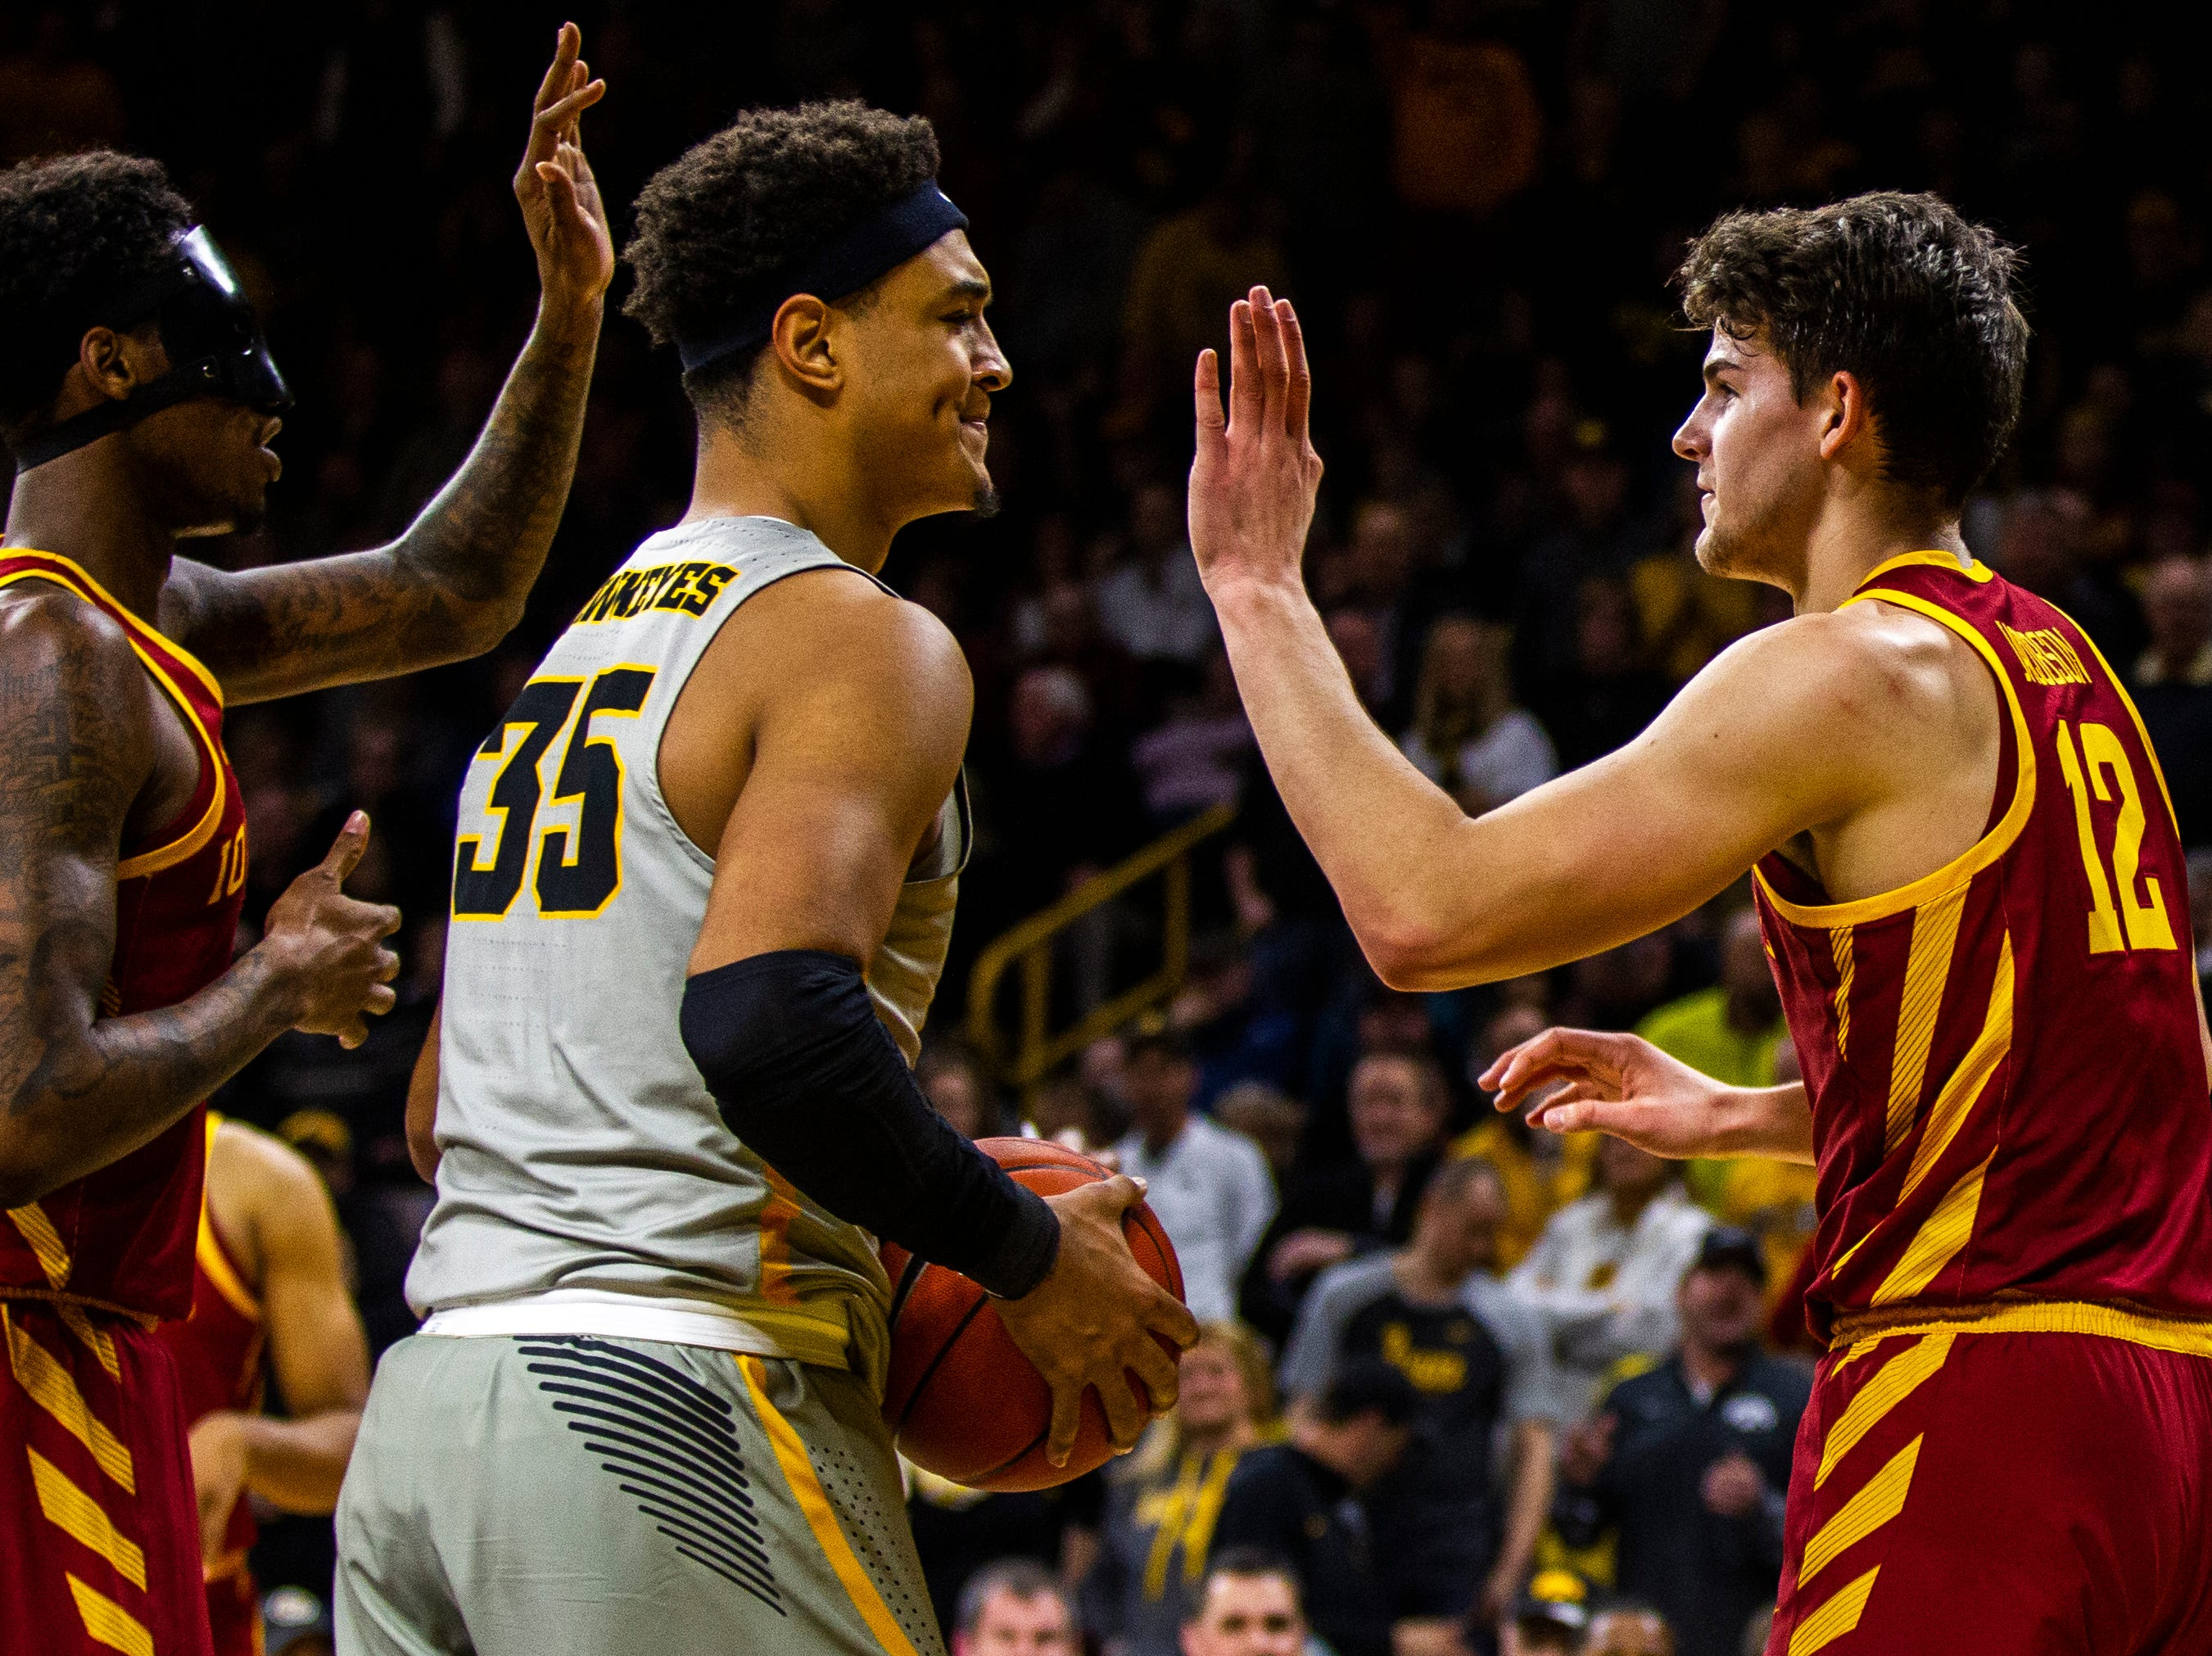 Iowa forward Cordell Pemsl (35) reacts after getting called for a foul while Iowa State forward Zoran Talley Jr. (left) high-fives Iowa State forward Michael Jacobson (12) during a NCAA Cy-Hawk series men's basketball game on Thursday, Dec. 6, 2018, at Carver-Hawkeye Arena in Iowa City.